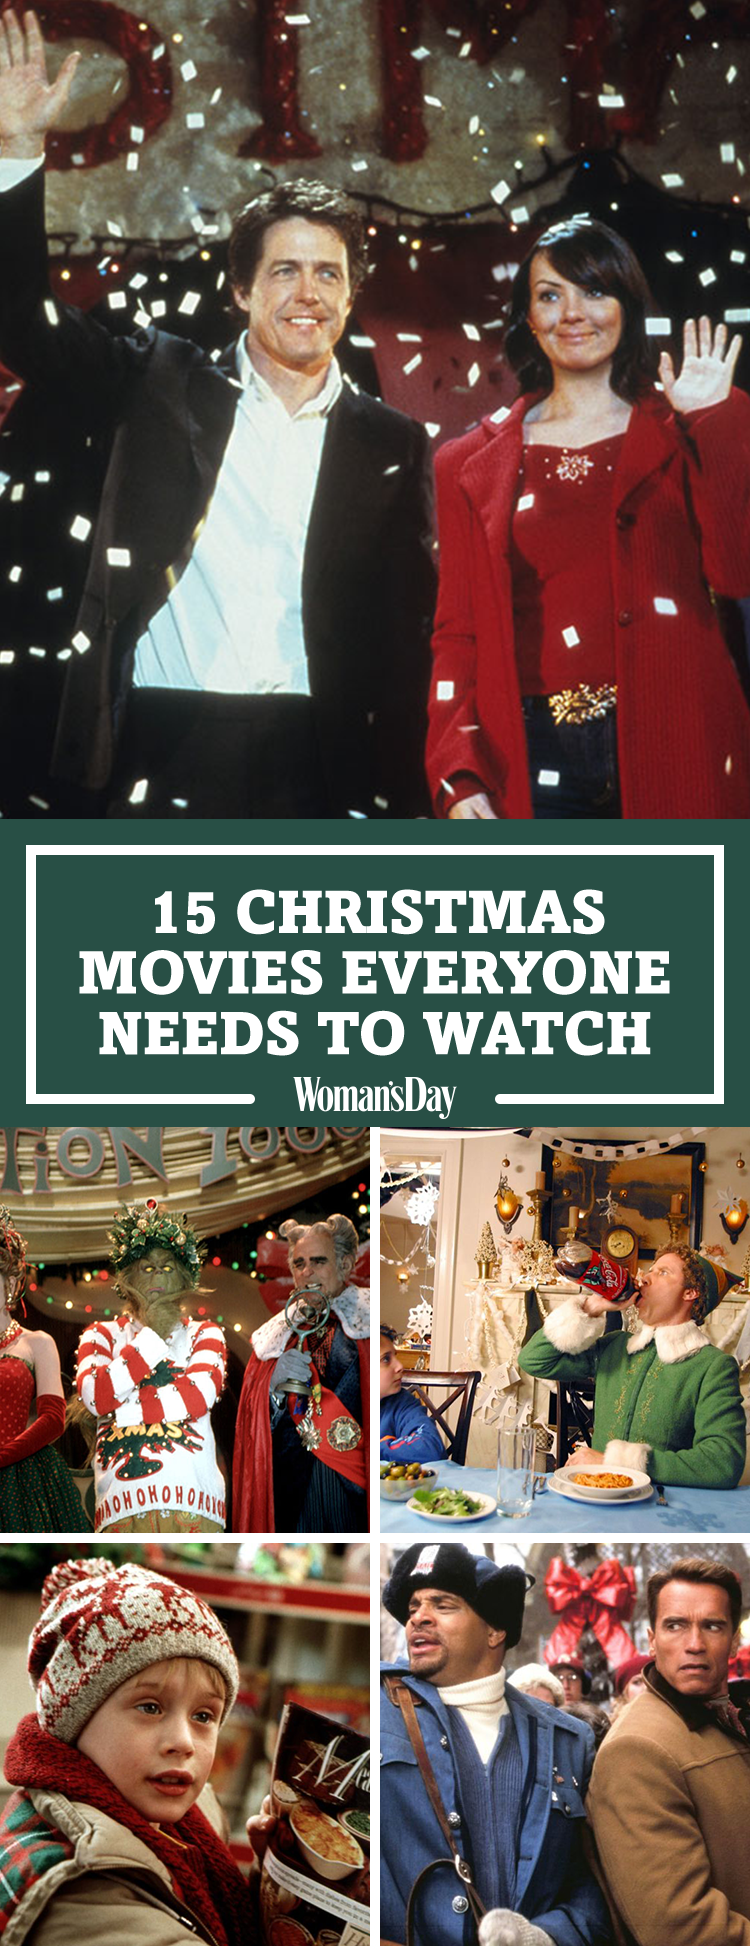 20 Classic Christmas Movies - Best Comedy Movies for the ...